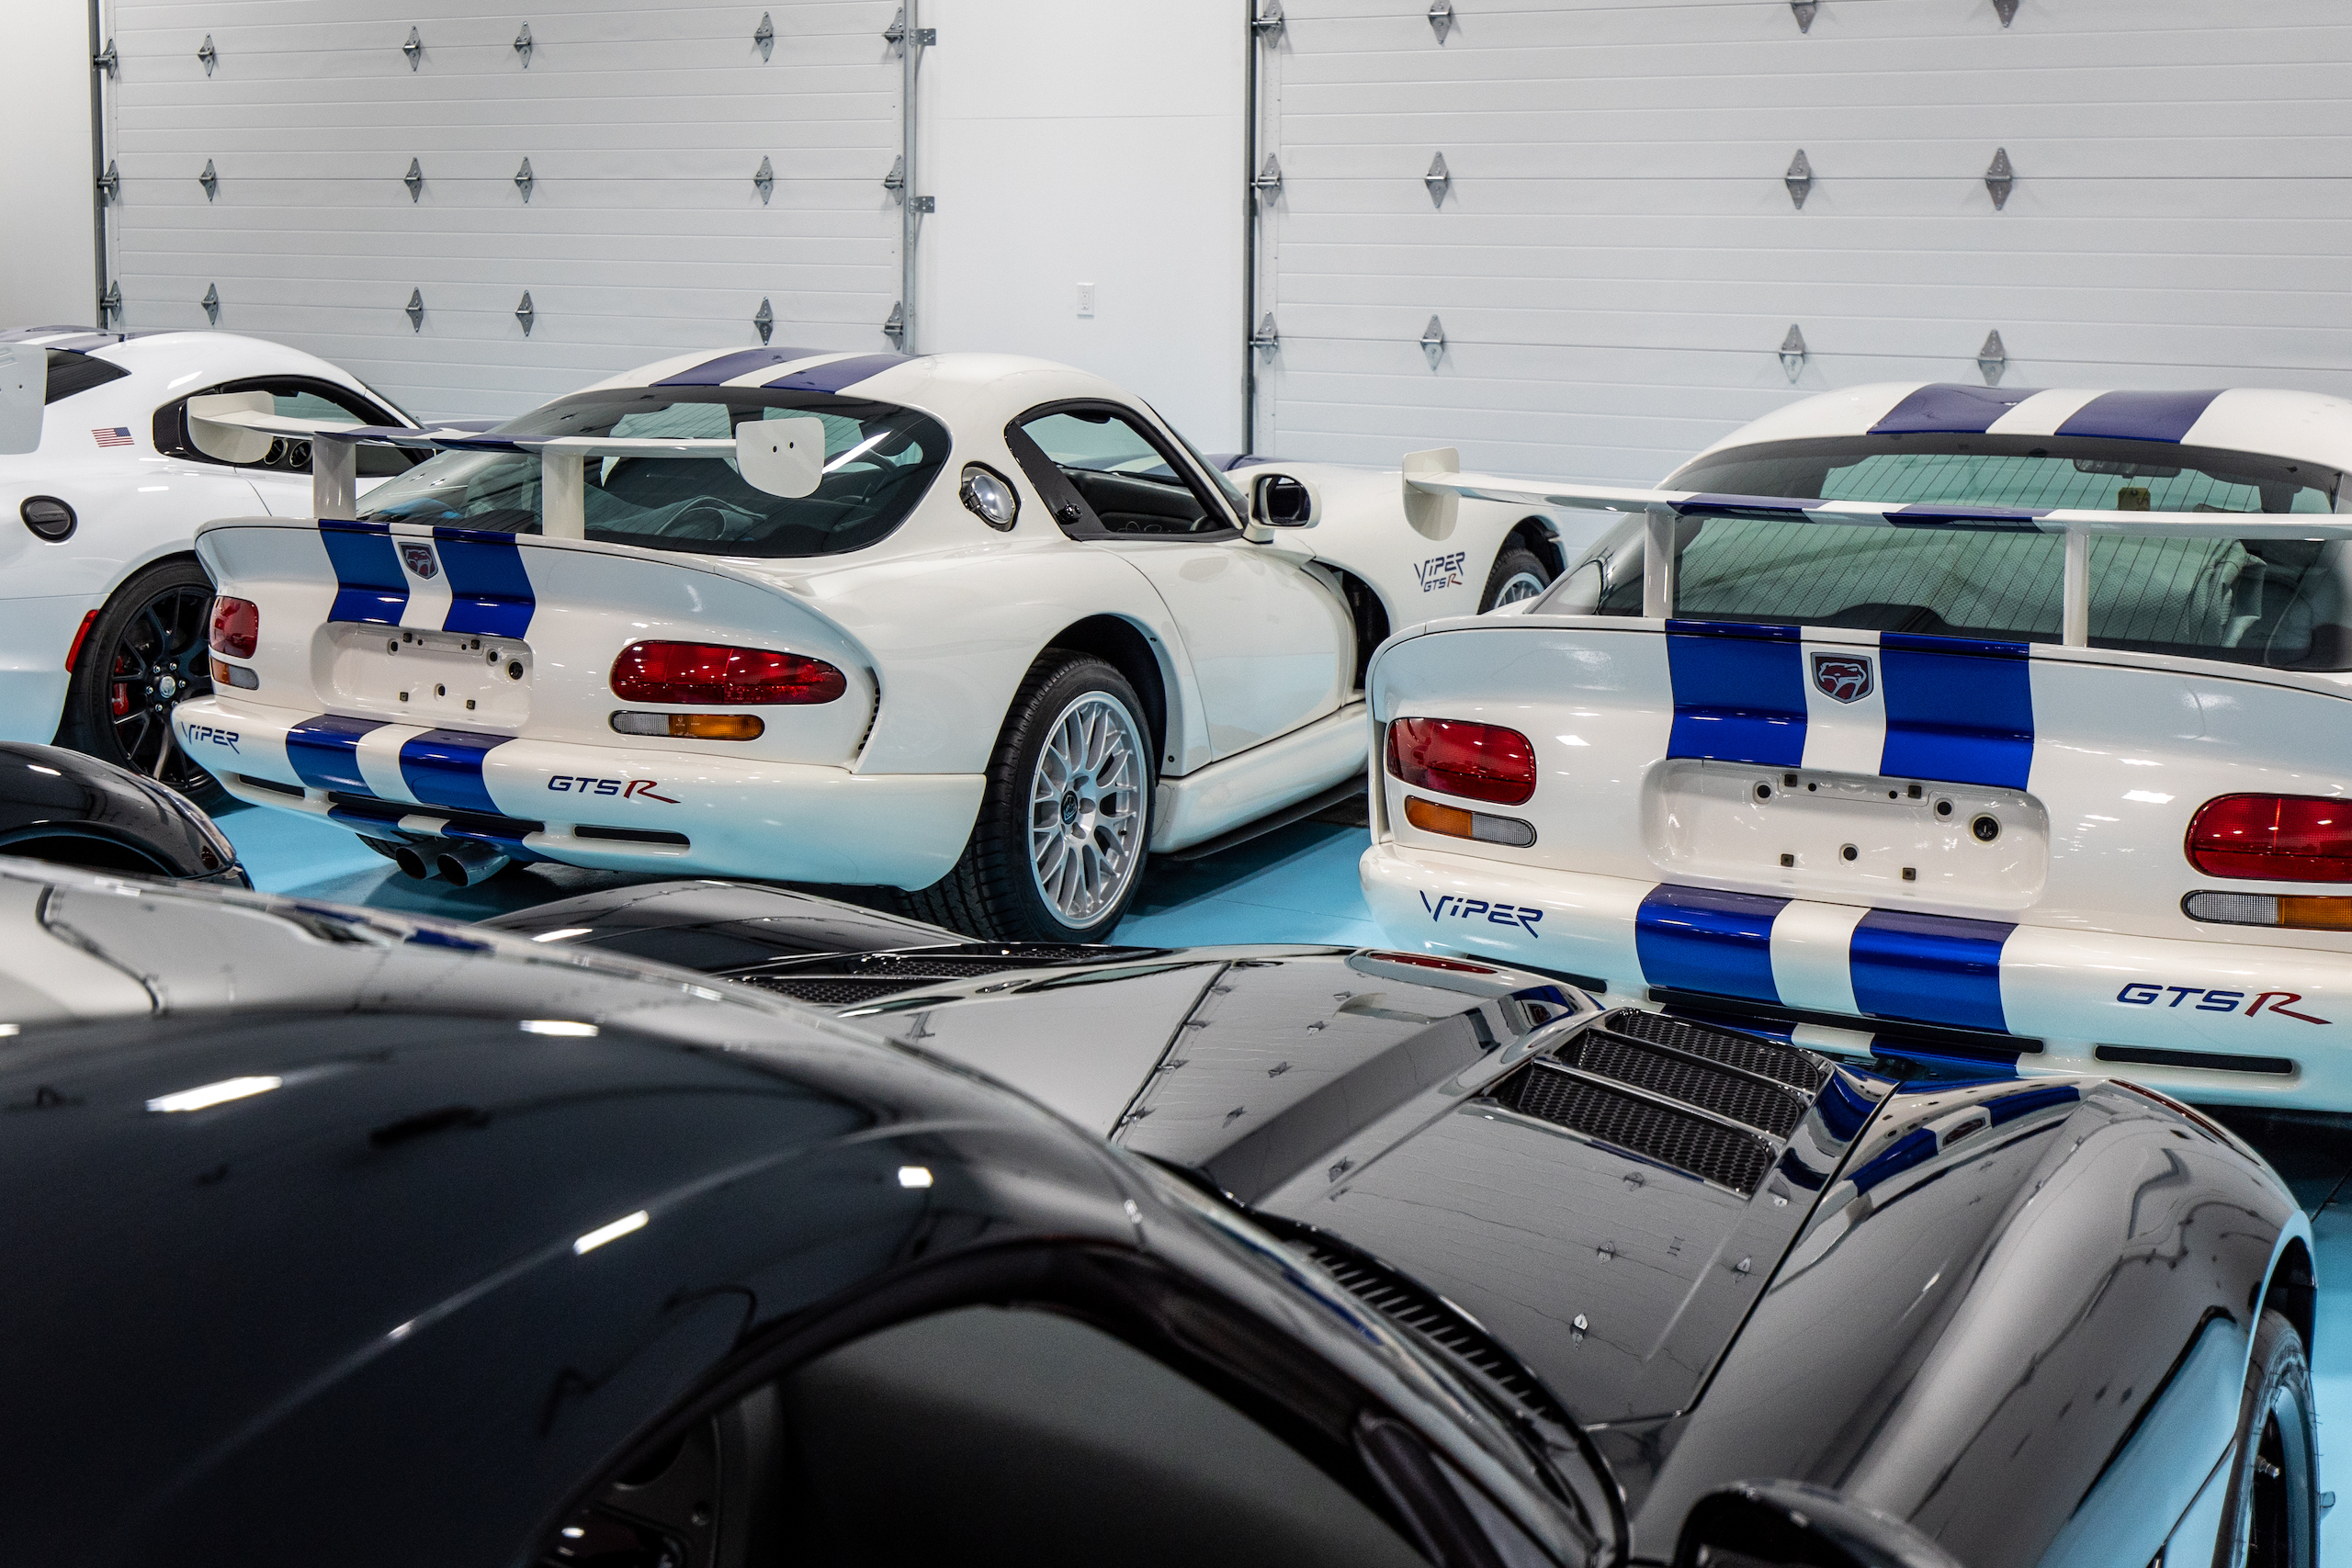 Viper collection rear